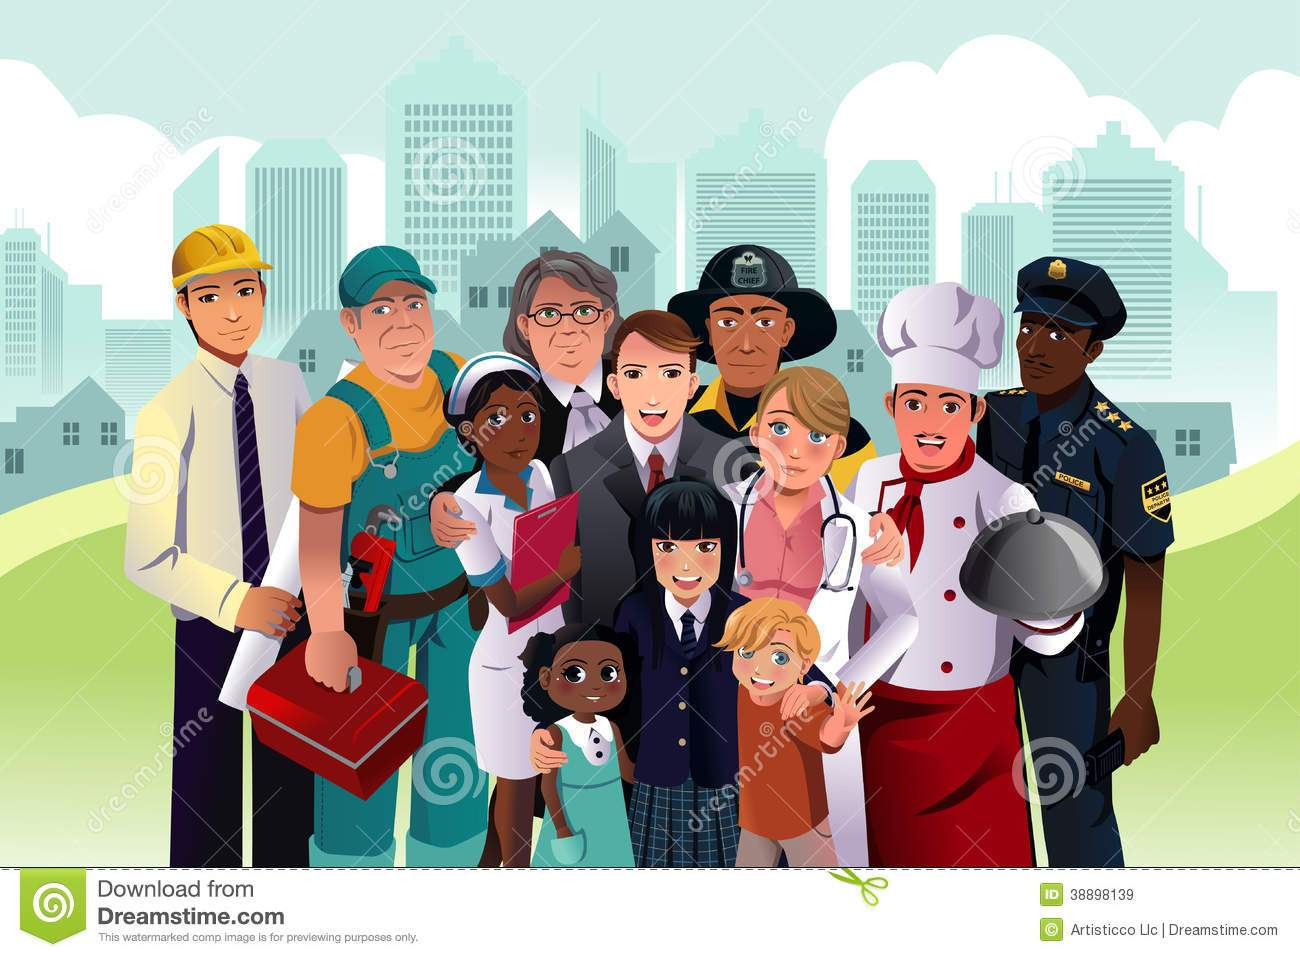 People in the community clipart 5 » Clipart Portal.